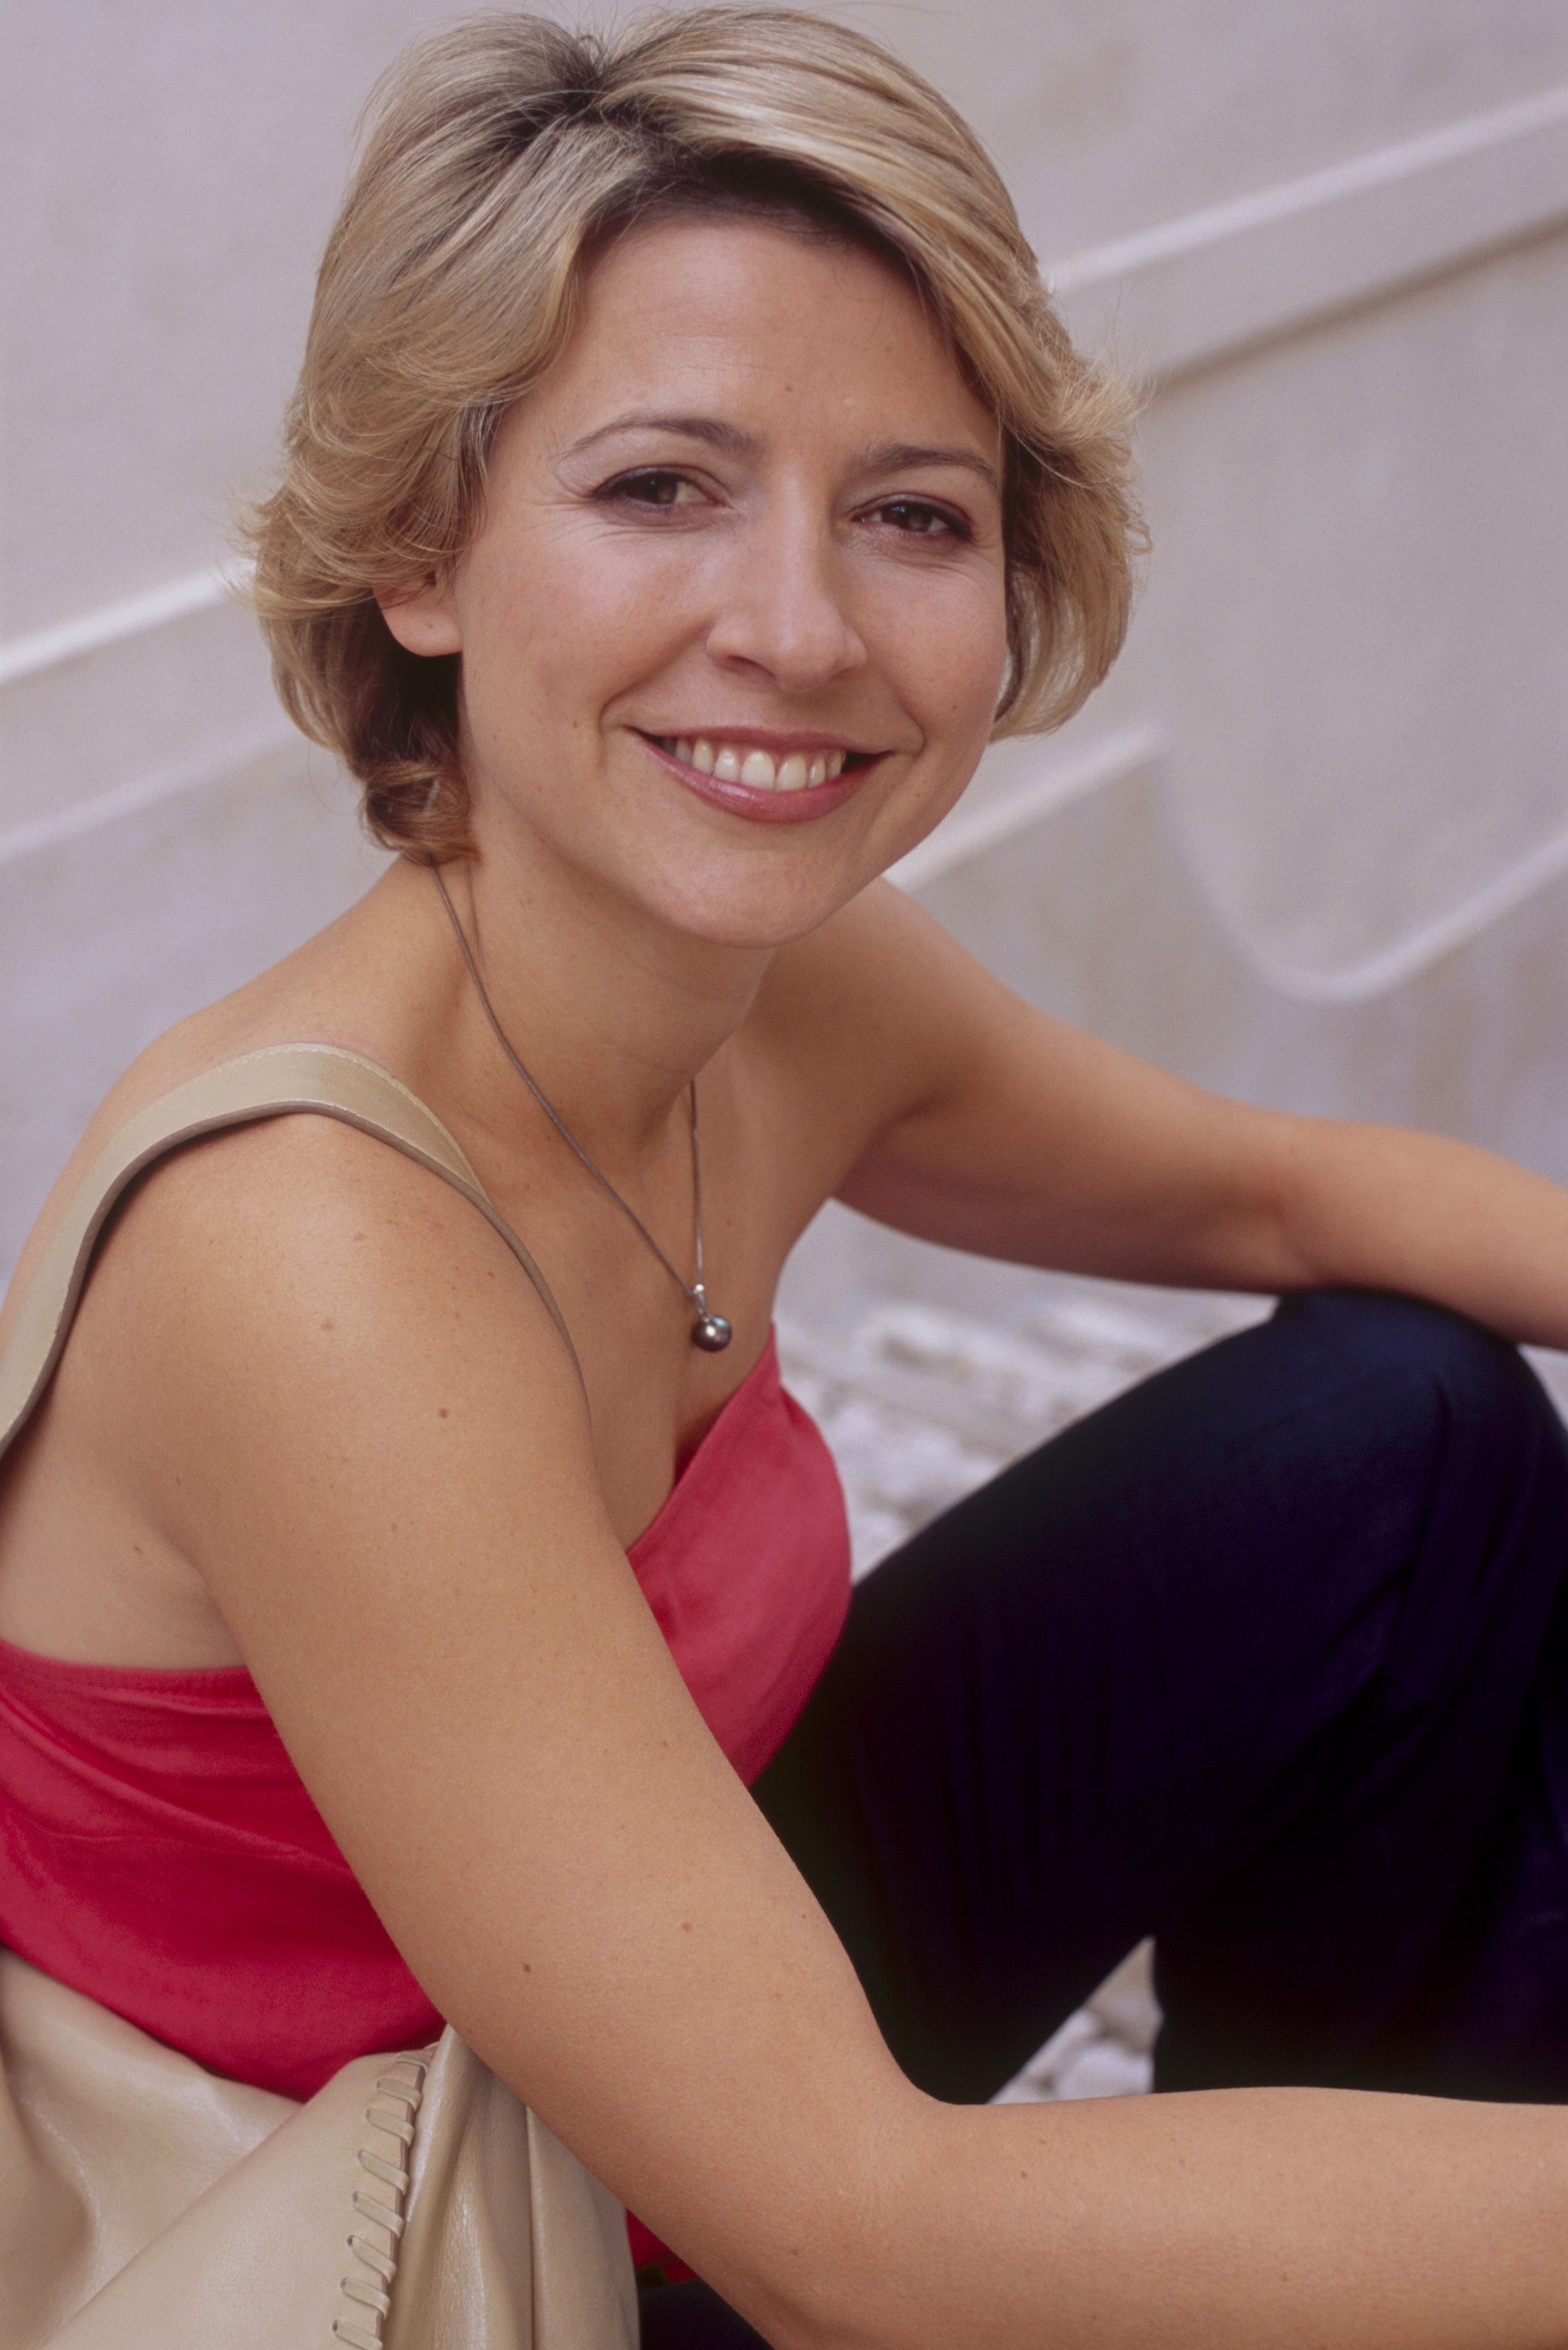 Samantha Brown Travel Channel Bikini http://blogs.radiotown.com/timewithkim/category/celebrity-interviews/page/2/